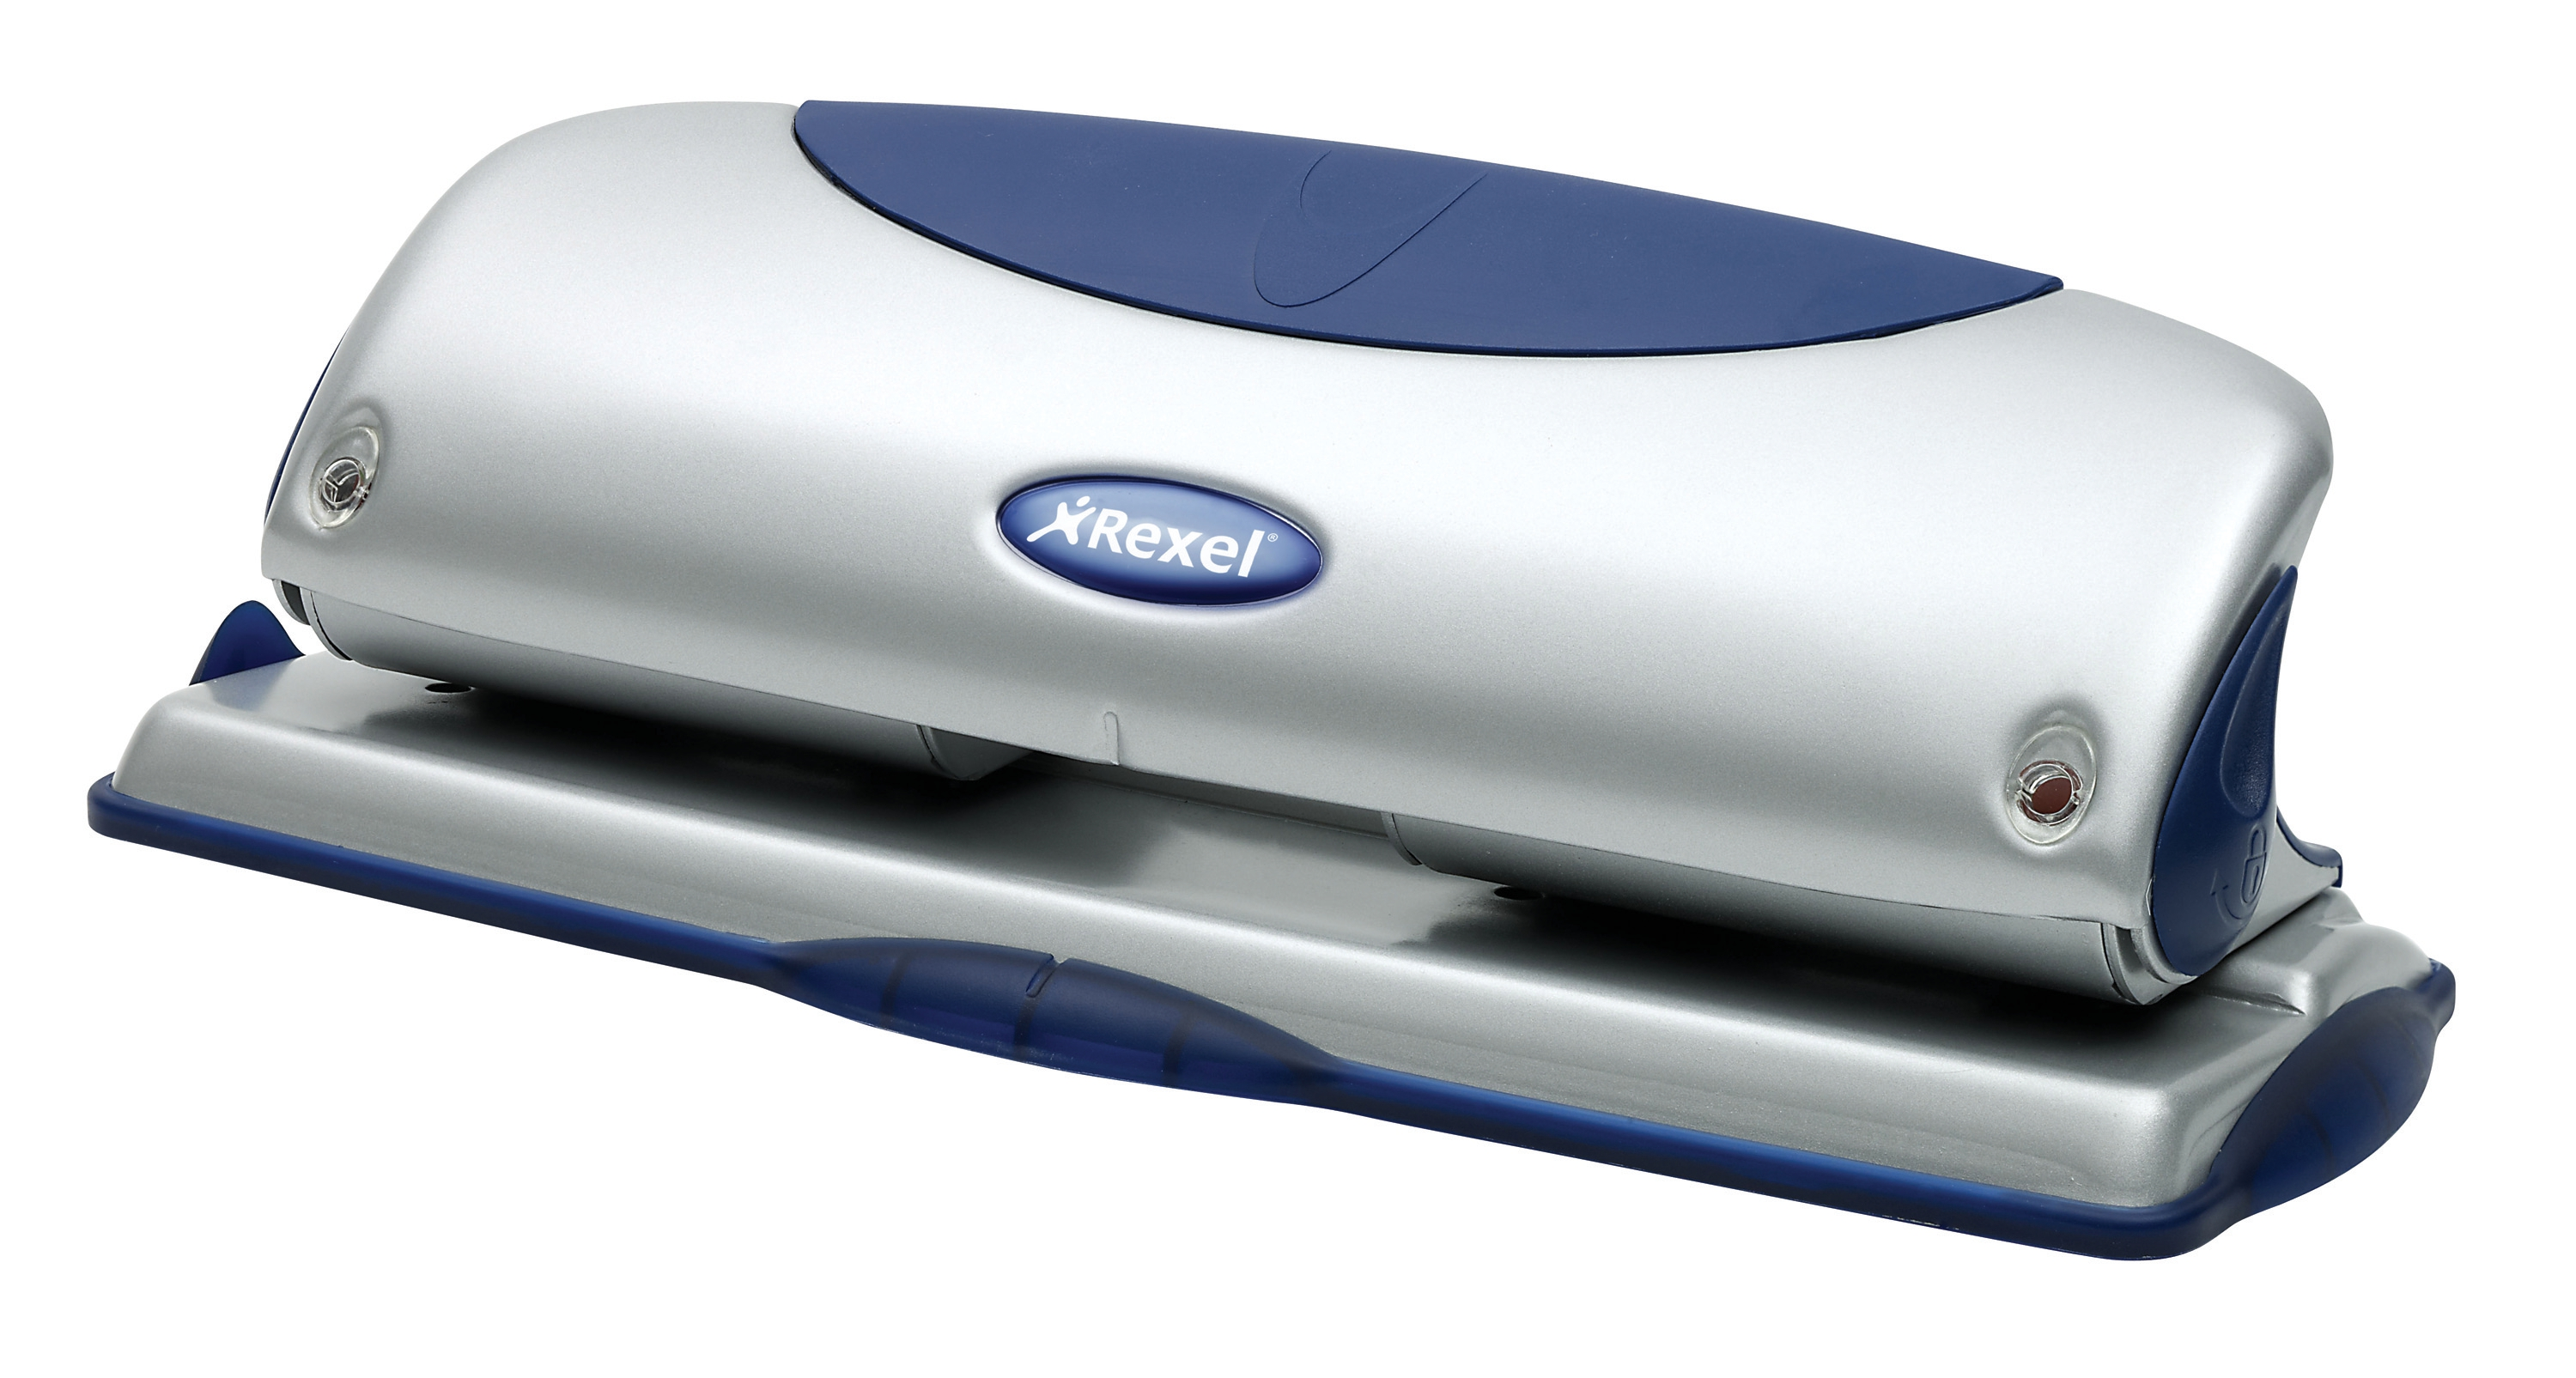 Image for Rexel P425 Punch 4-Hole Metal with Nameplate Capacity 25x 80gsm Blue and Silver Ref 2100754